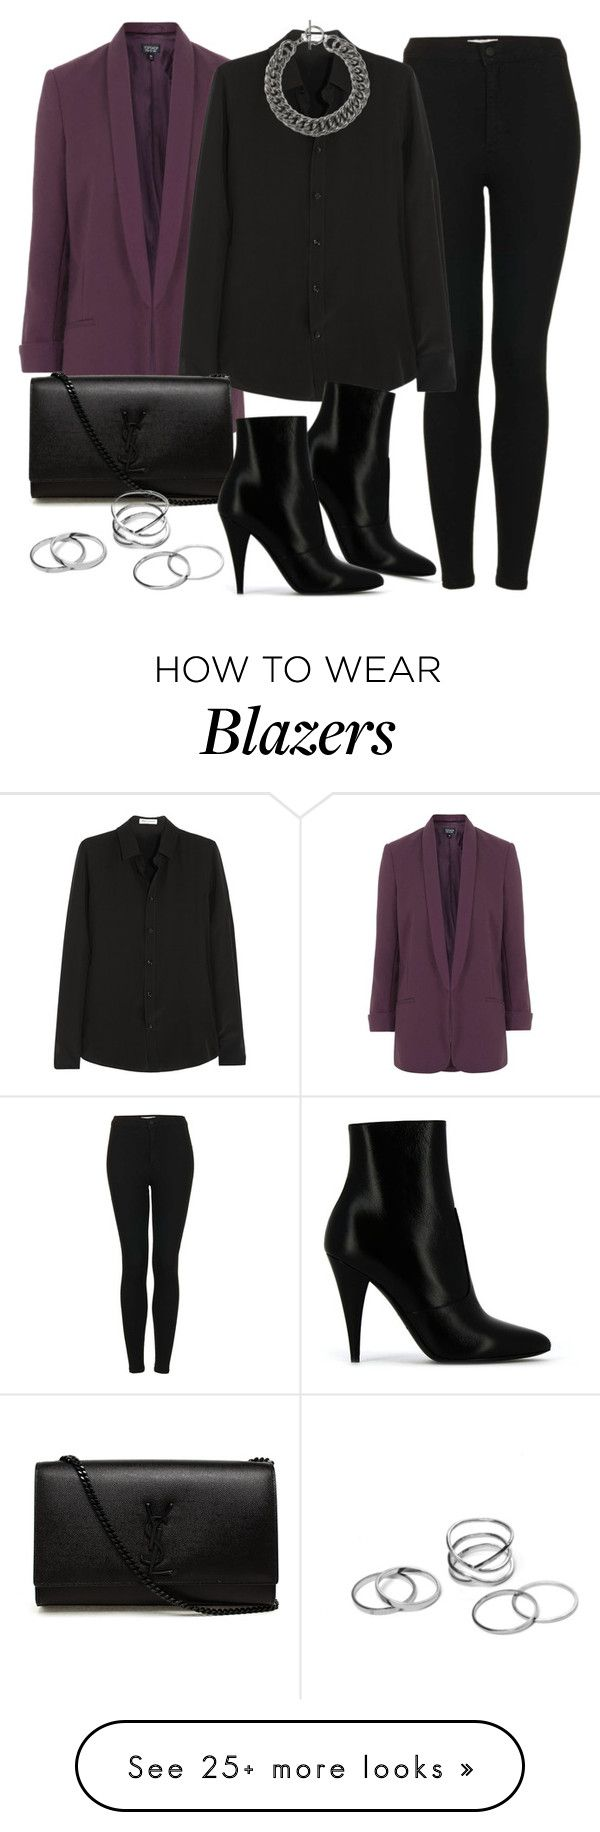 """""""Style #9393"""" by vany-alvarado on Polyvore featuring Topshop and Yves Saint Laurent"""